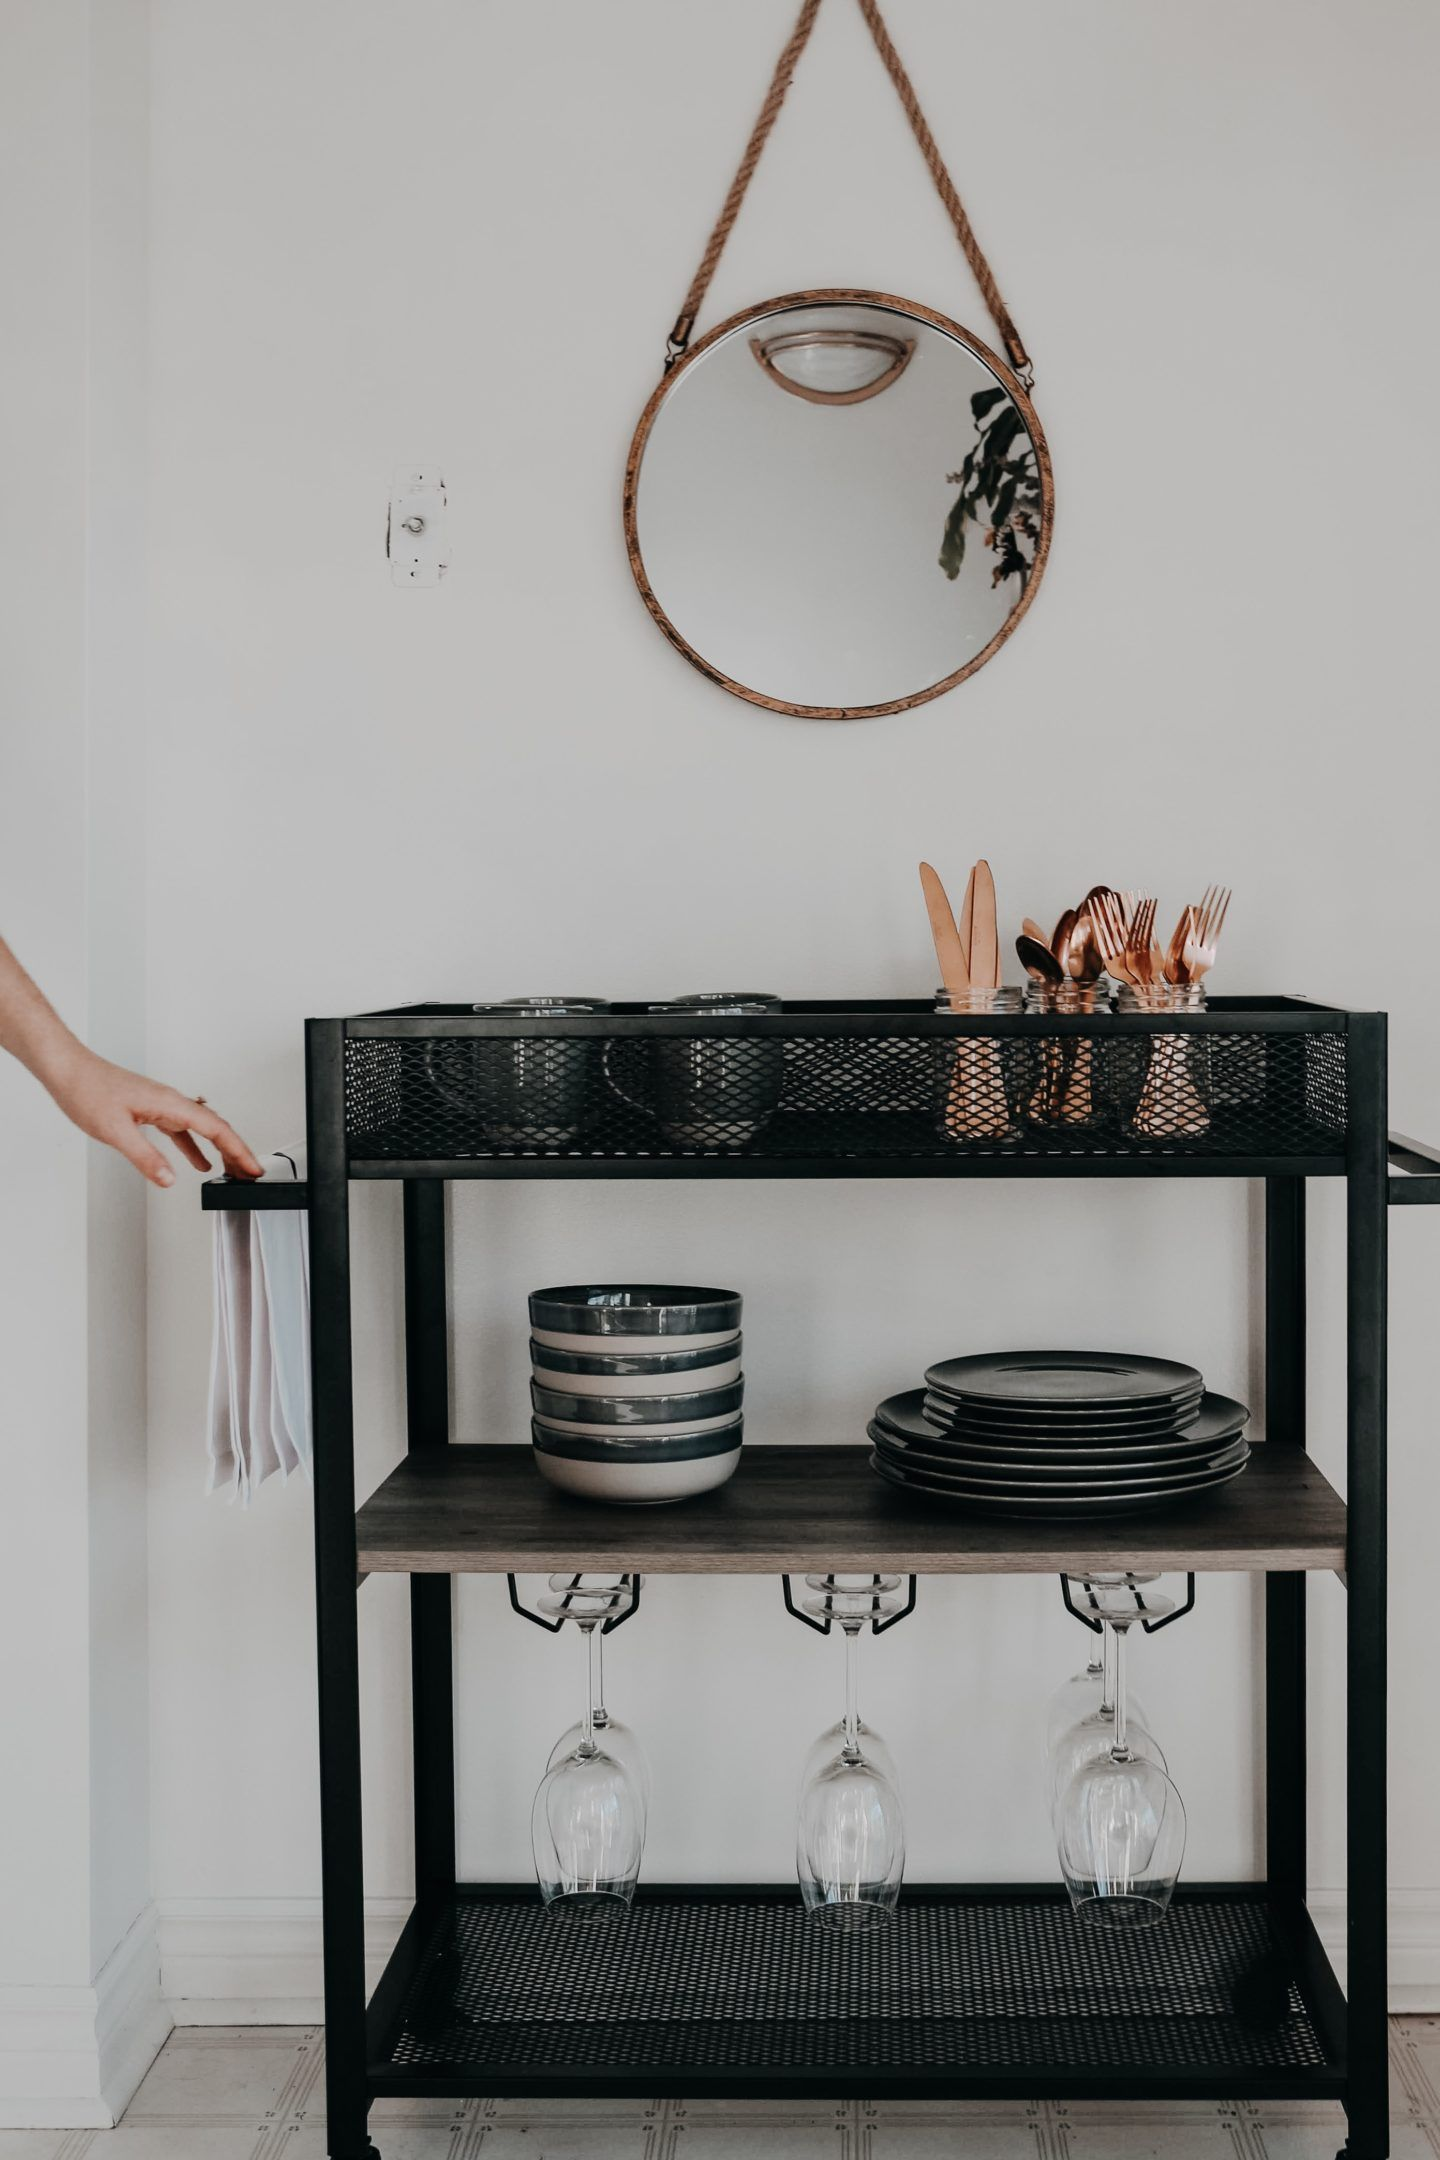 Creating Our Wedding Registry with Bed Bath & Beyond